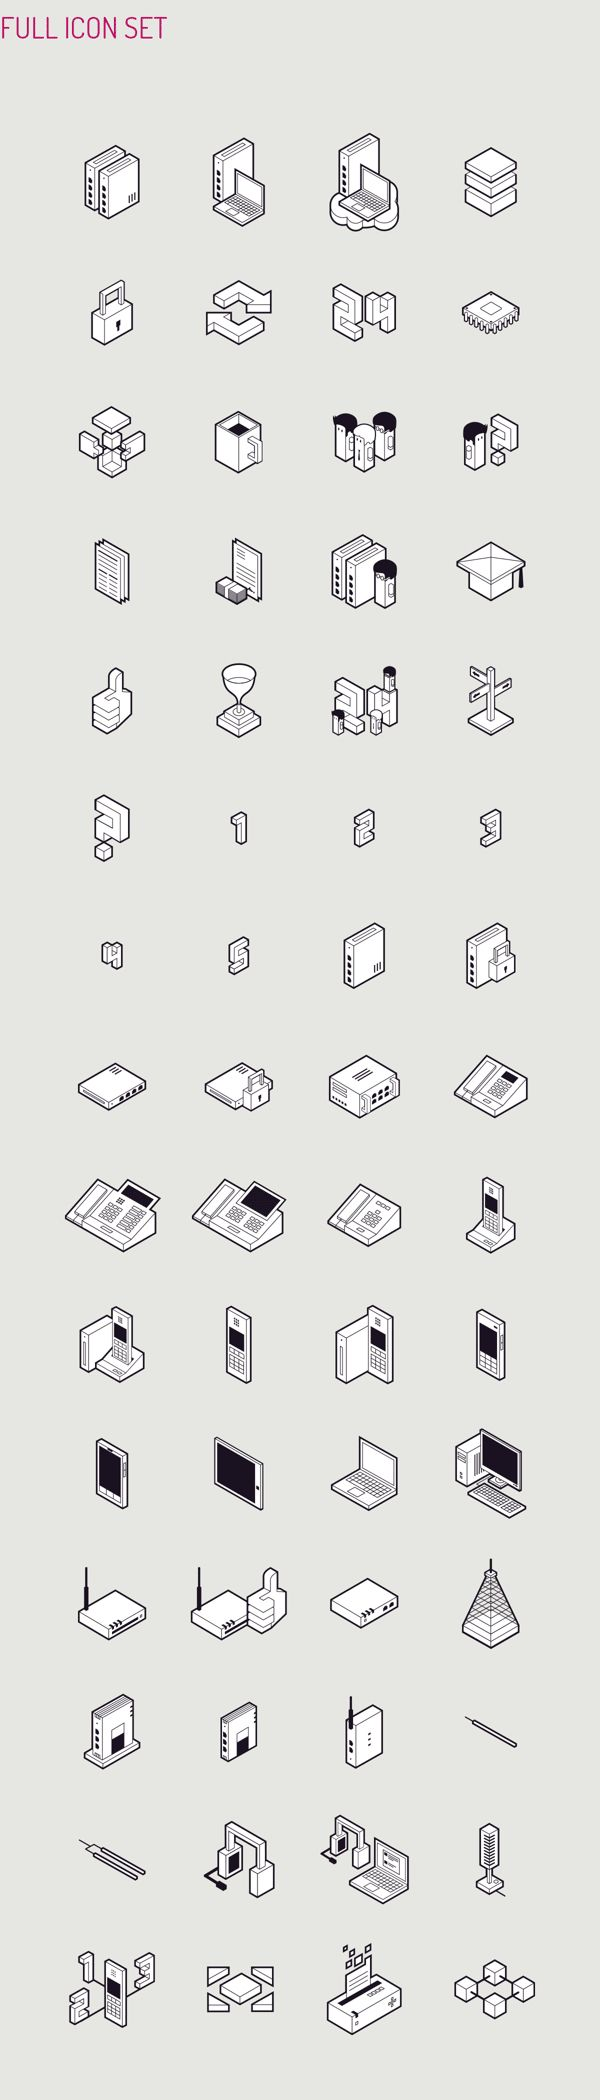 Isometric Icon Set. Gdansk, Poland-based branding and graphic design studio Perconte was asked by Datera SA to create an icon set consisting of 60 custom m